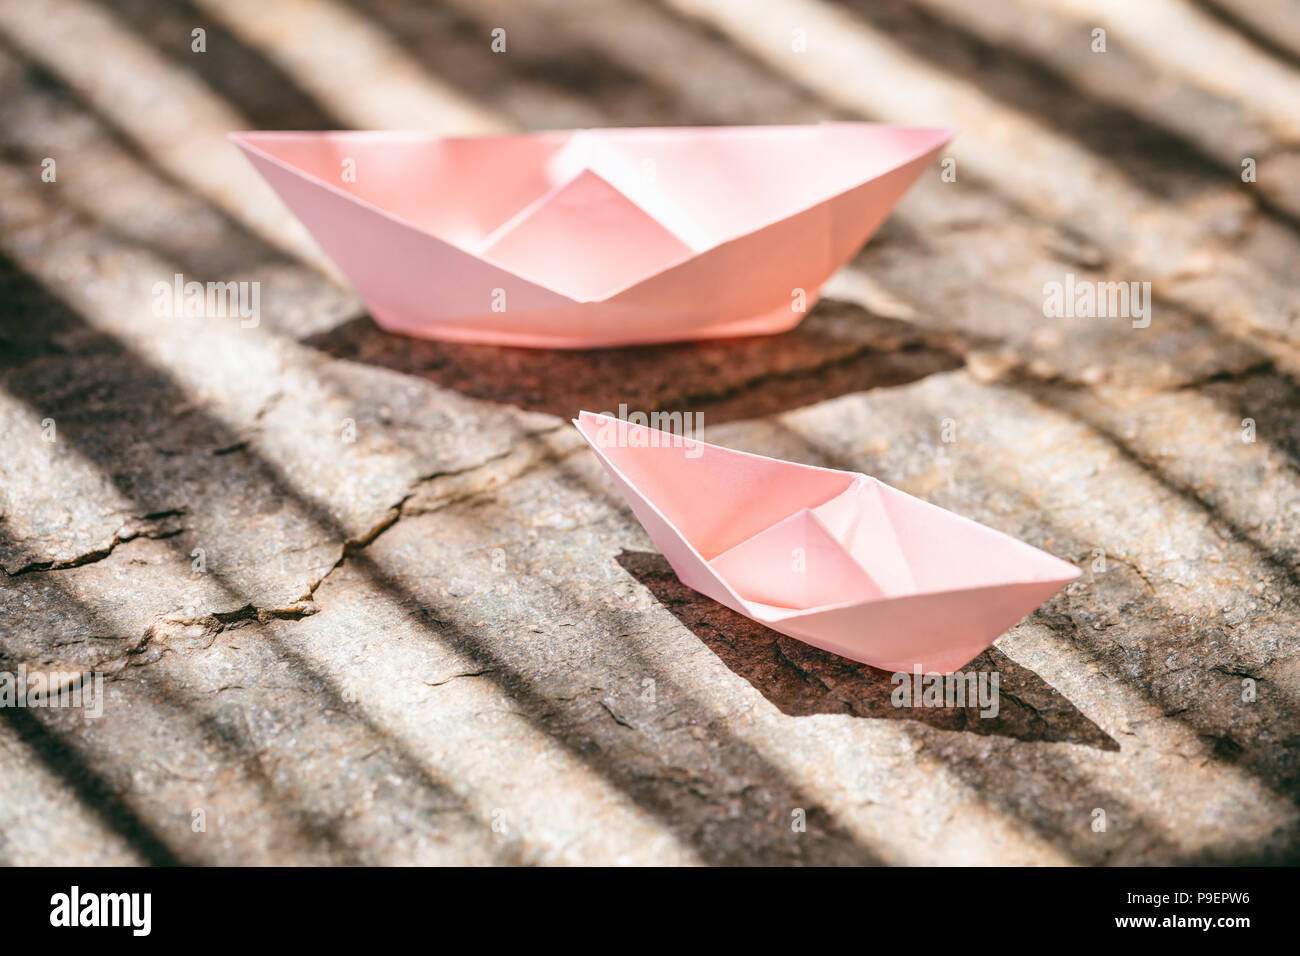 Two pink paper folded, origami, boats on a rock, copy space